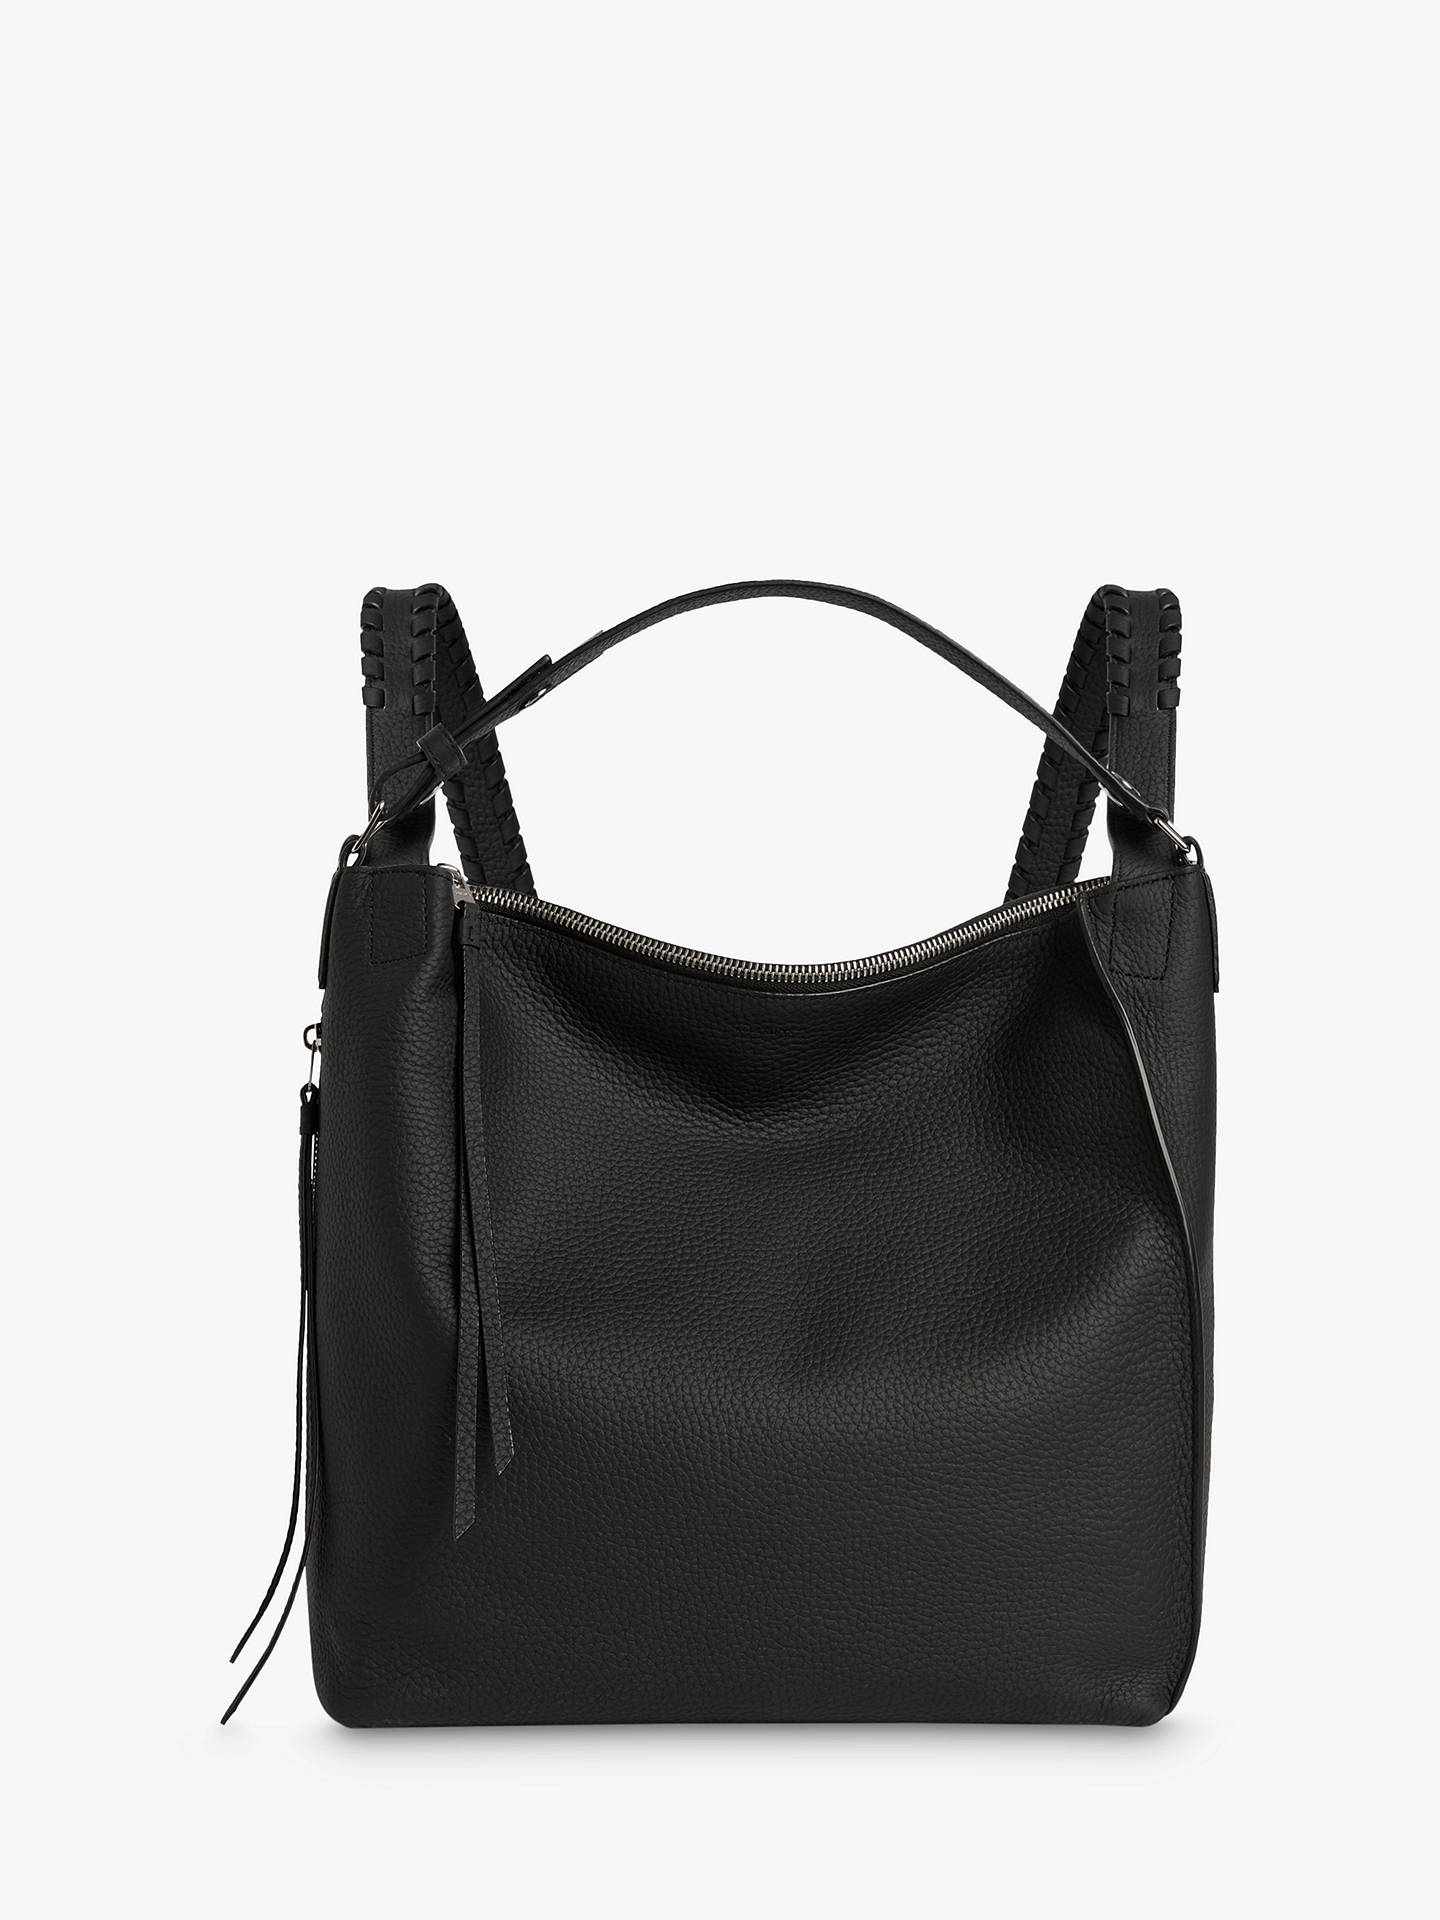 21ee844d79 Buy AllSaints Kita Small Leather Backpack